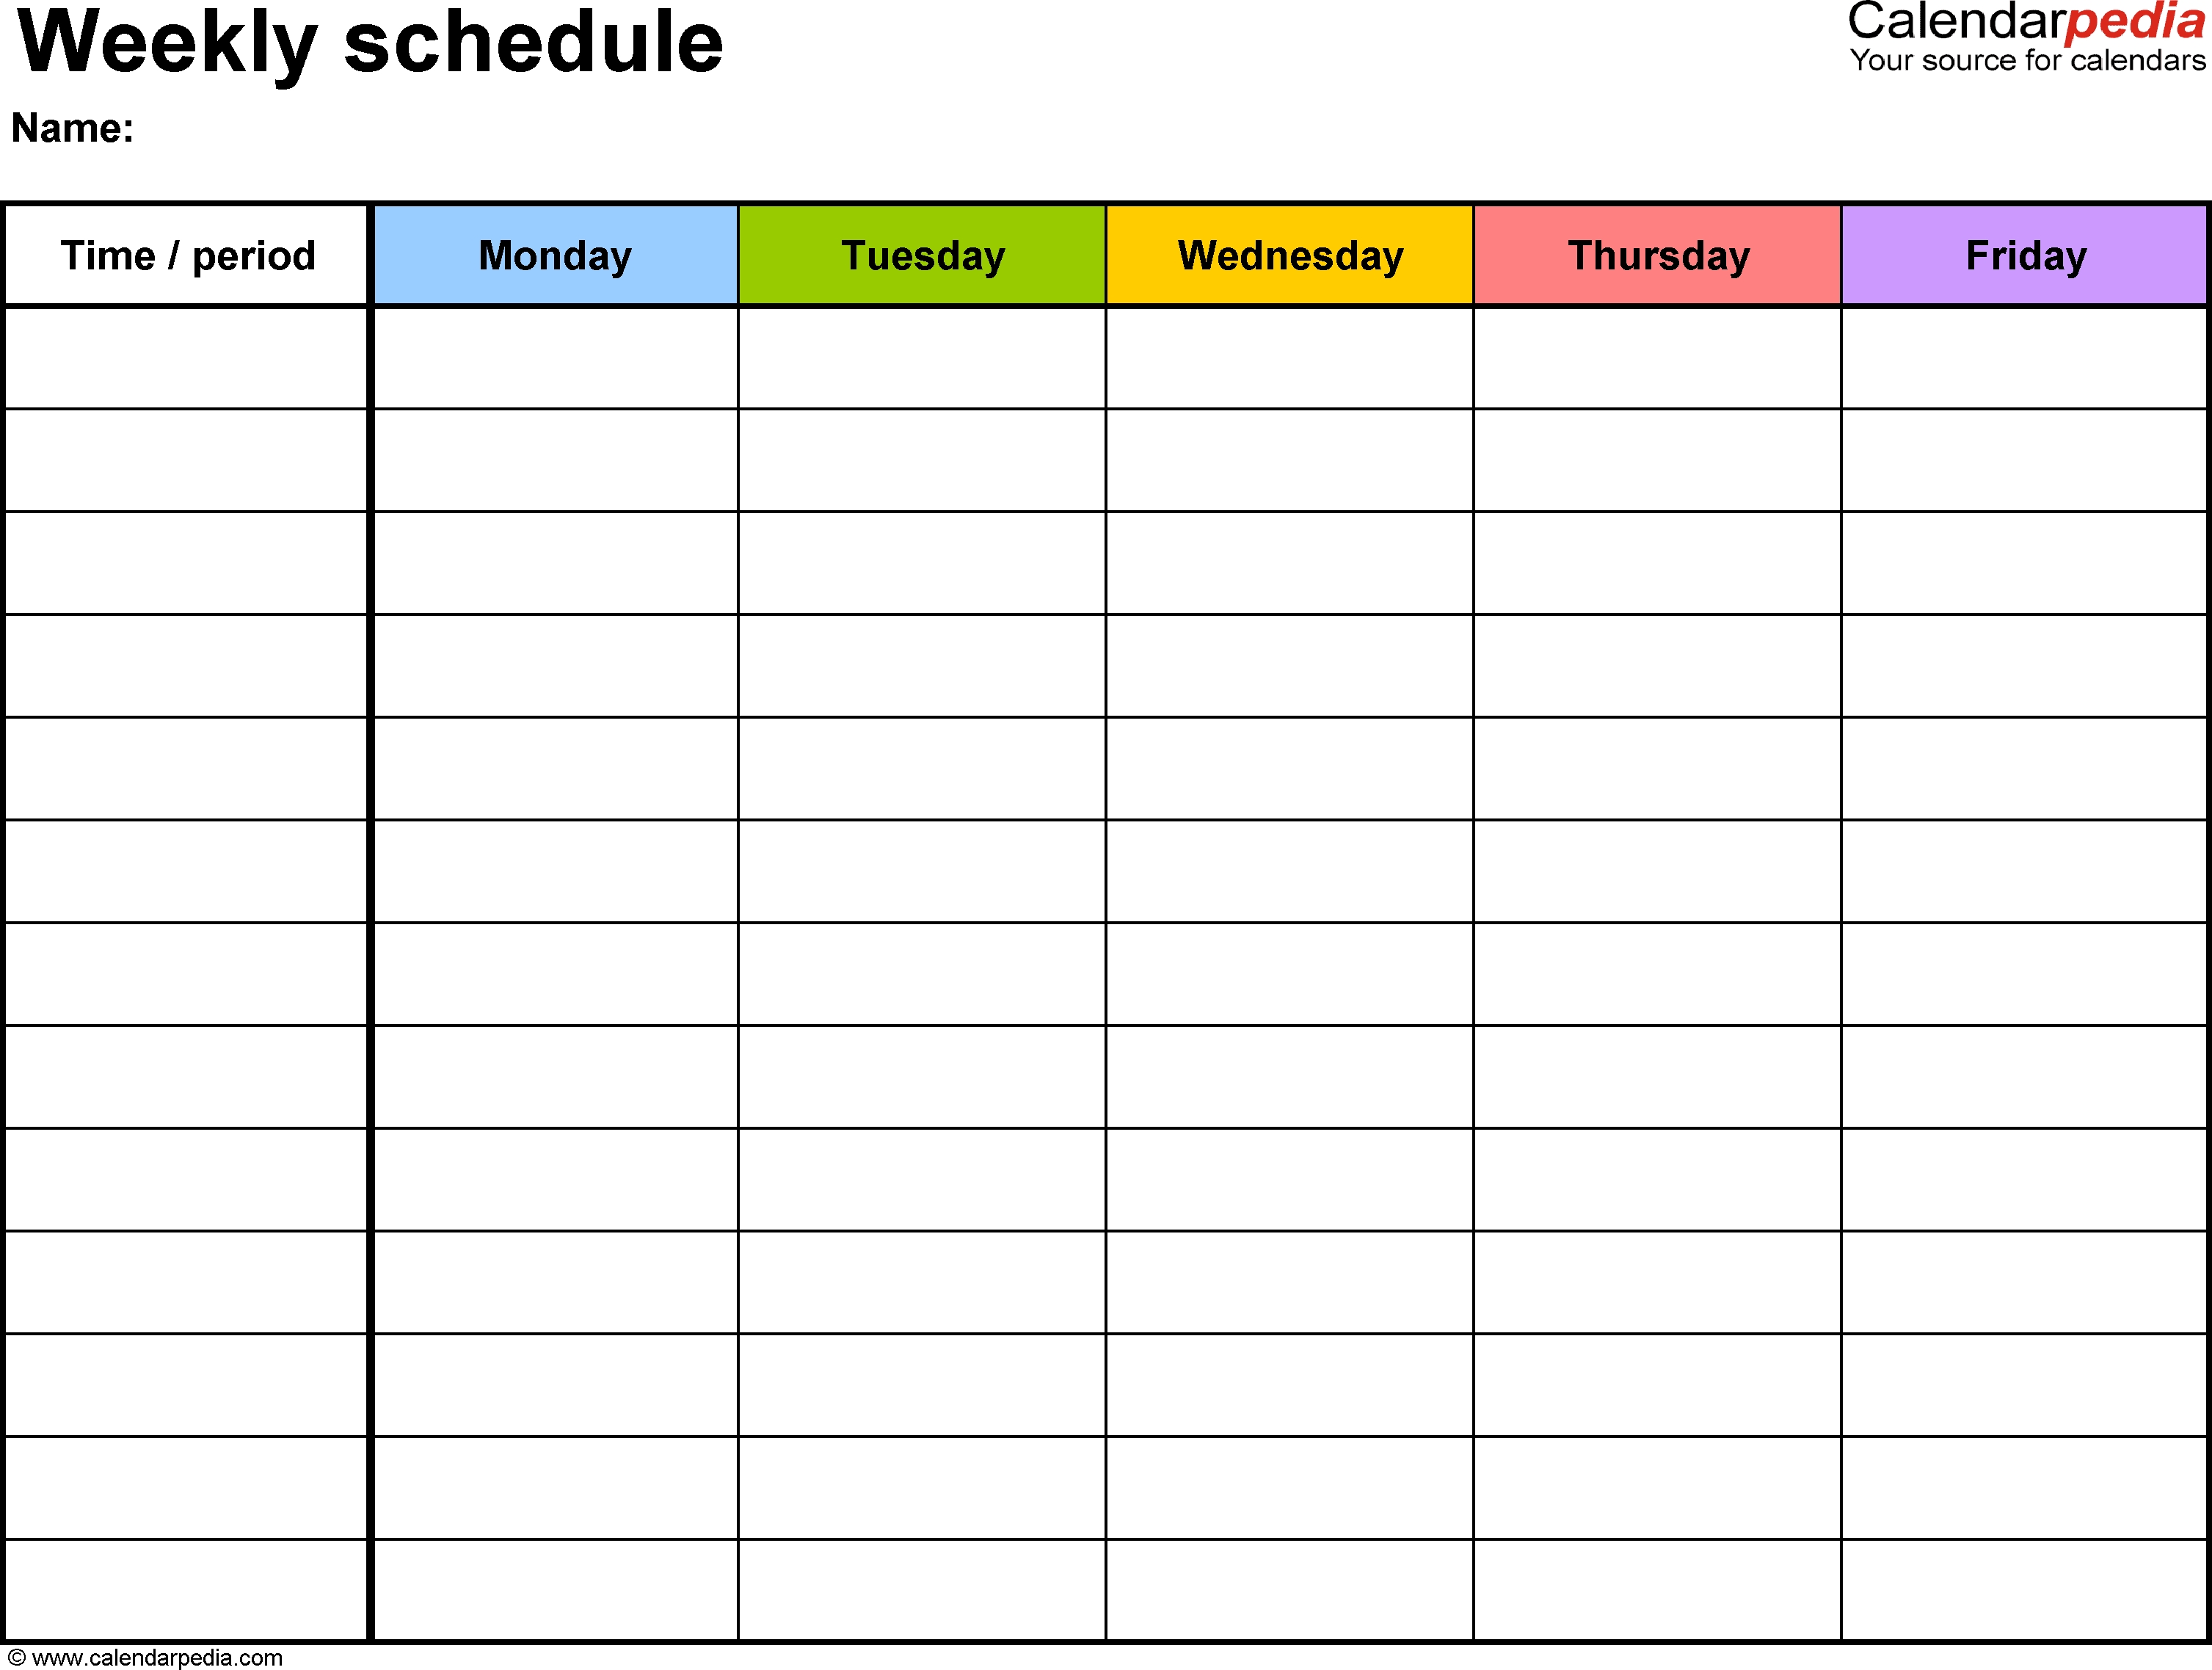 Free Weekly Schedule Templates For Word - 18 Templates-Calendar Template Monday Through Friday